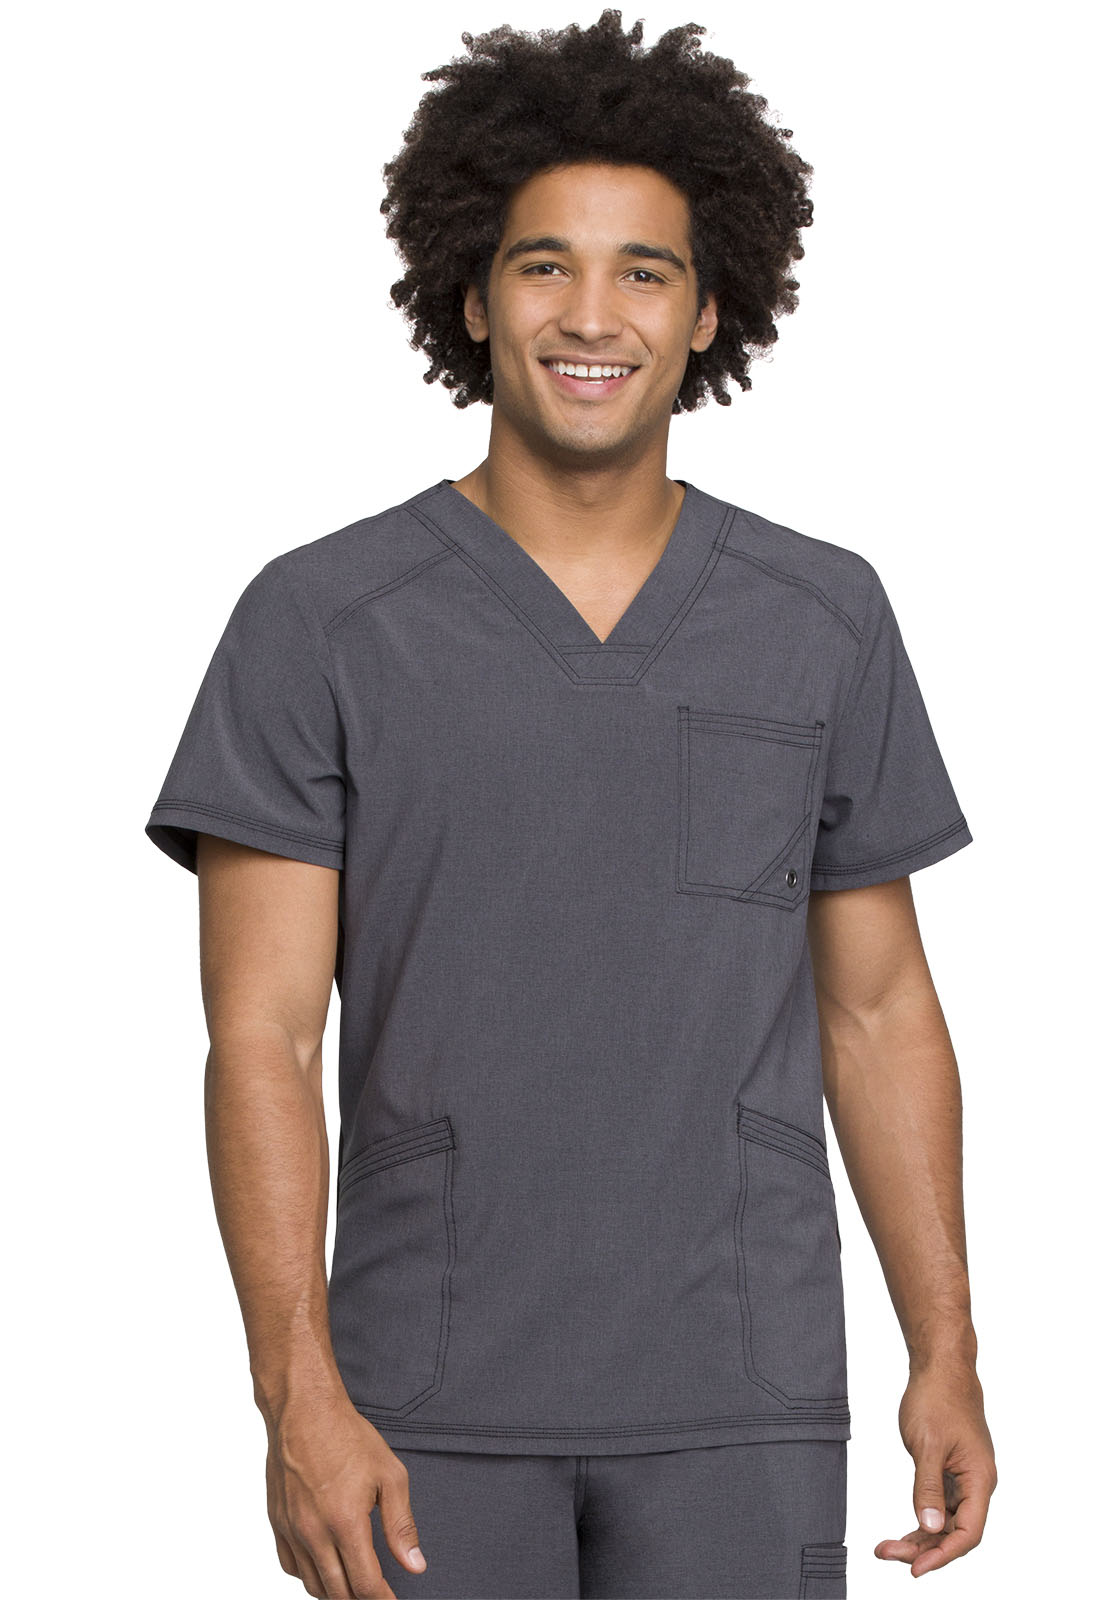 af2148abed6 Infinity Men's V-Neck Top in Heather Charcoal CK900A-HTCH from ...